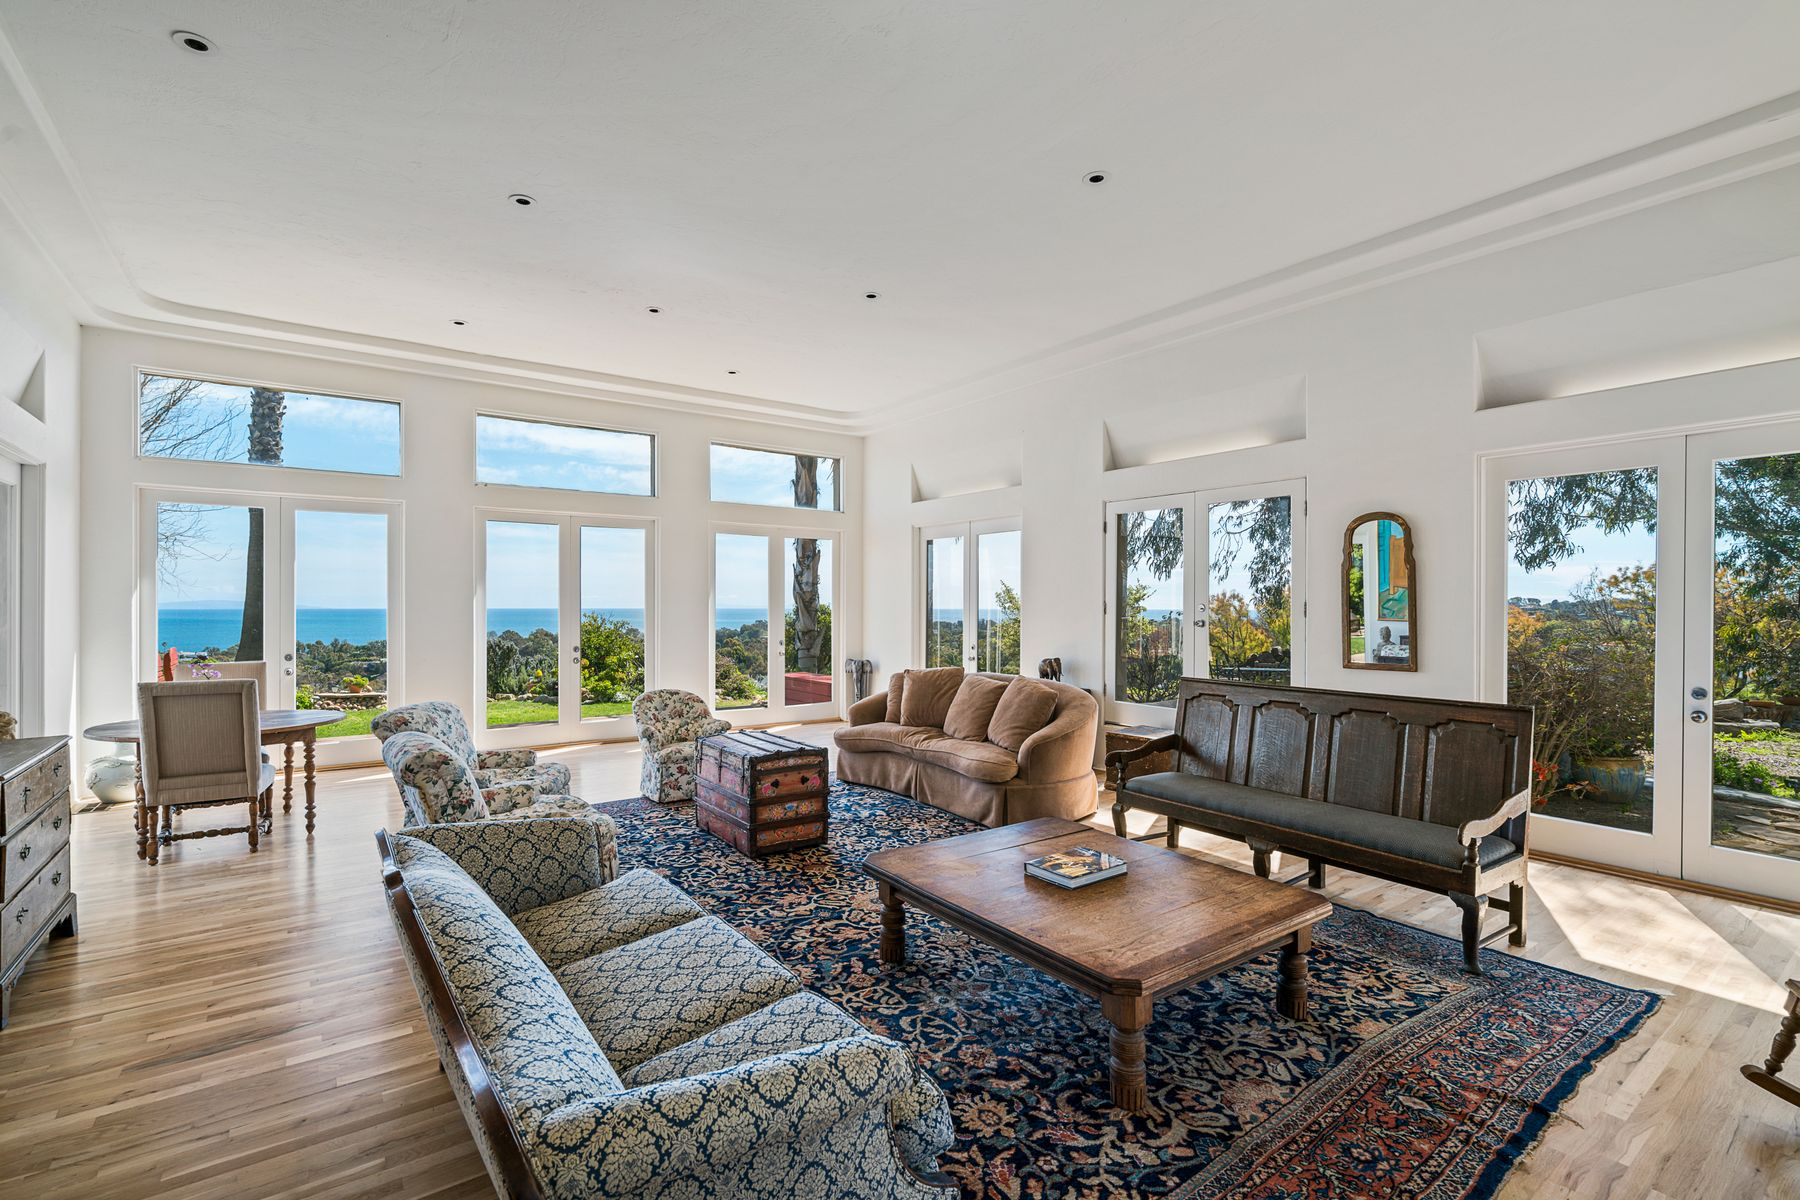 Single Family Homes for Sale at Private Ocean View Compound 28811 Pch Malibu, California 90265 United States